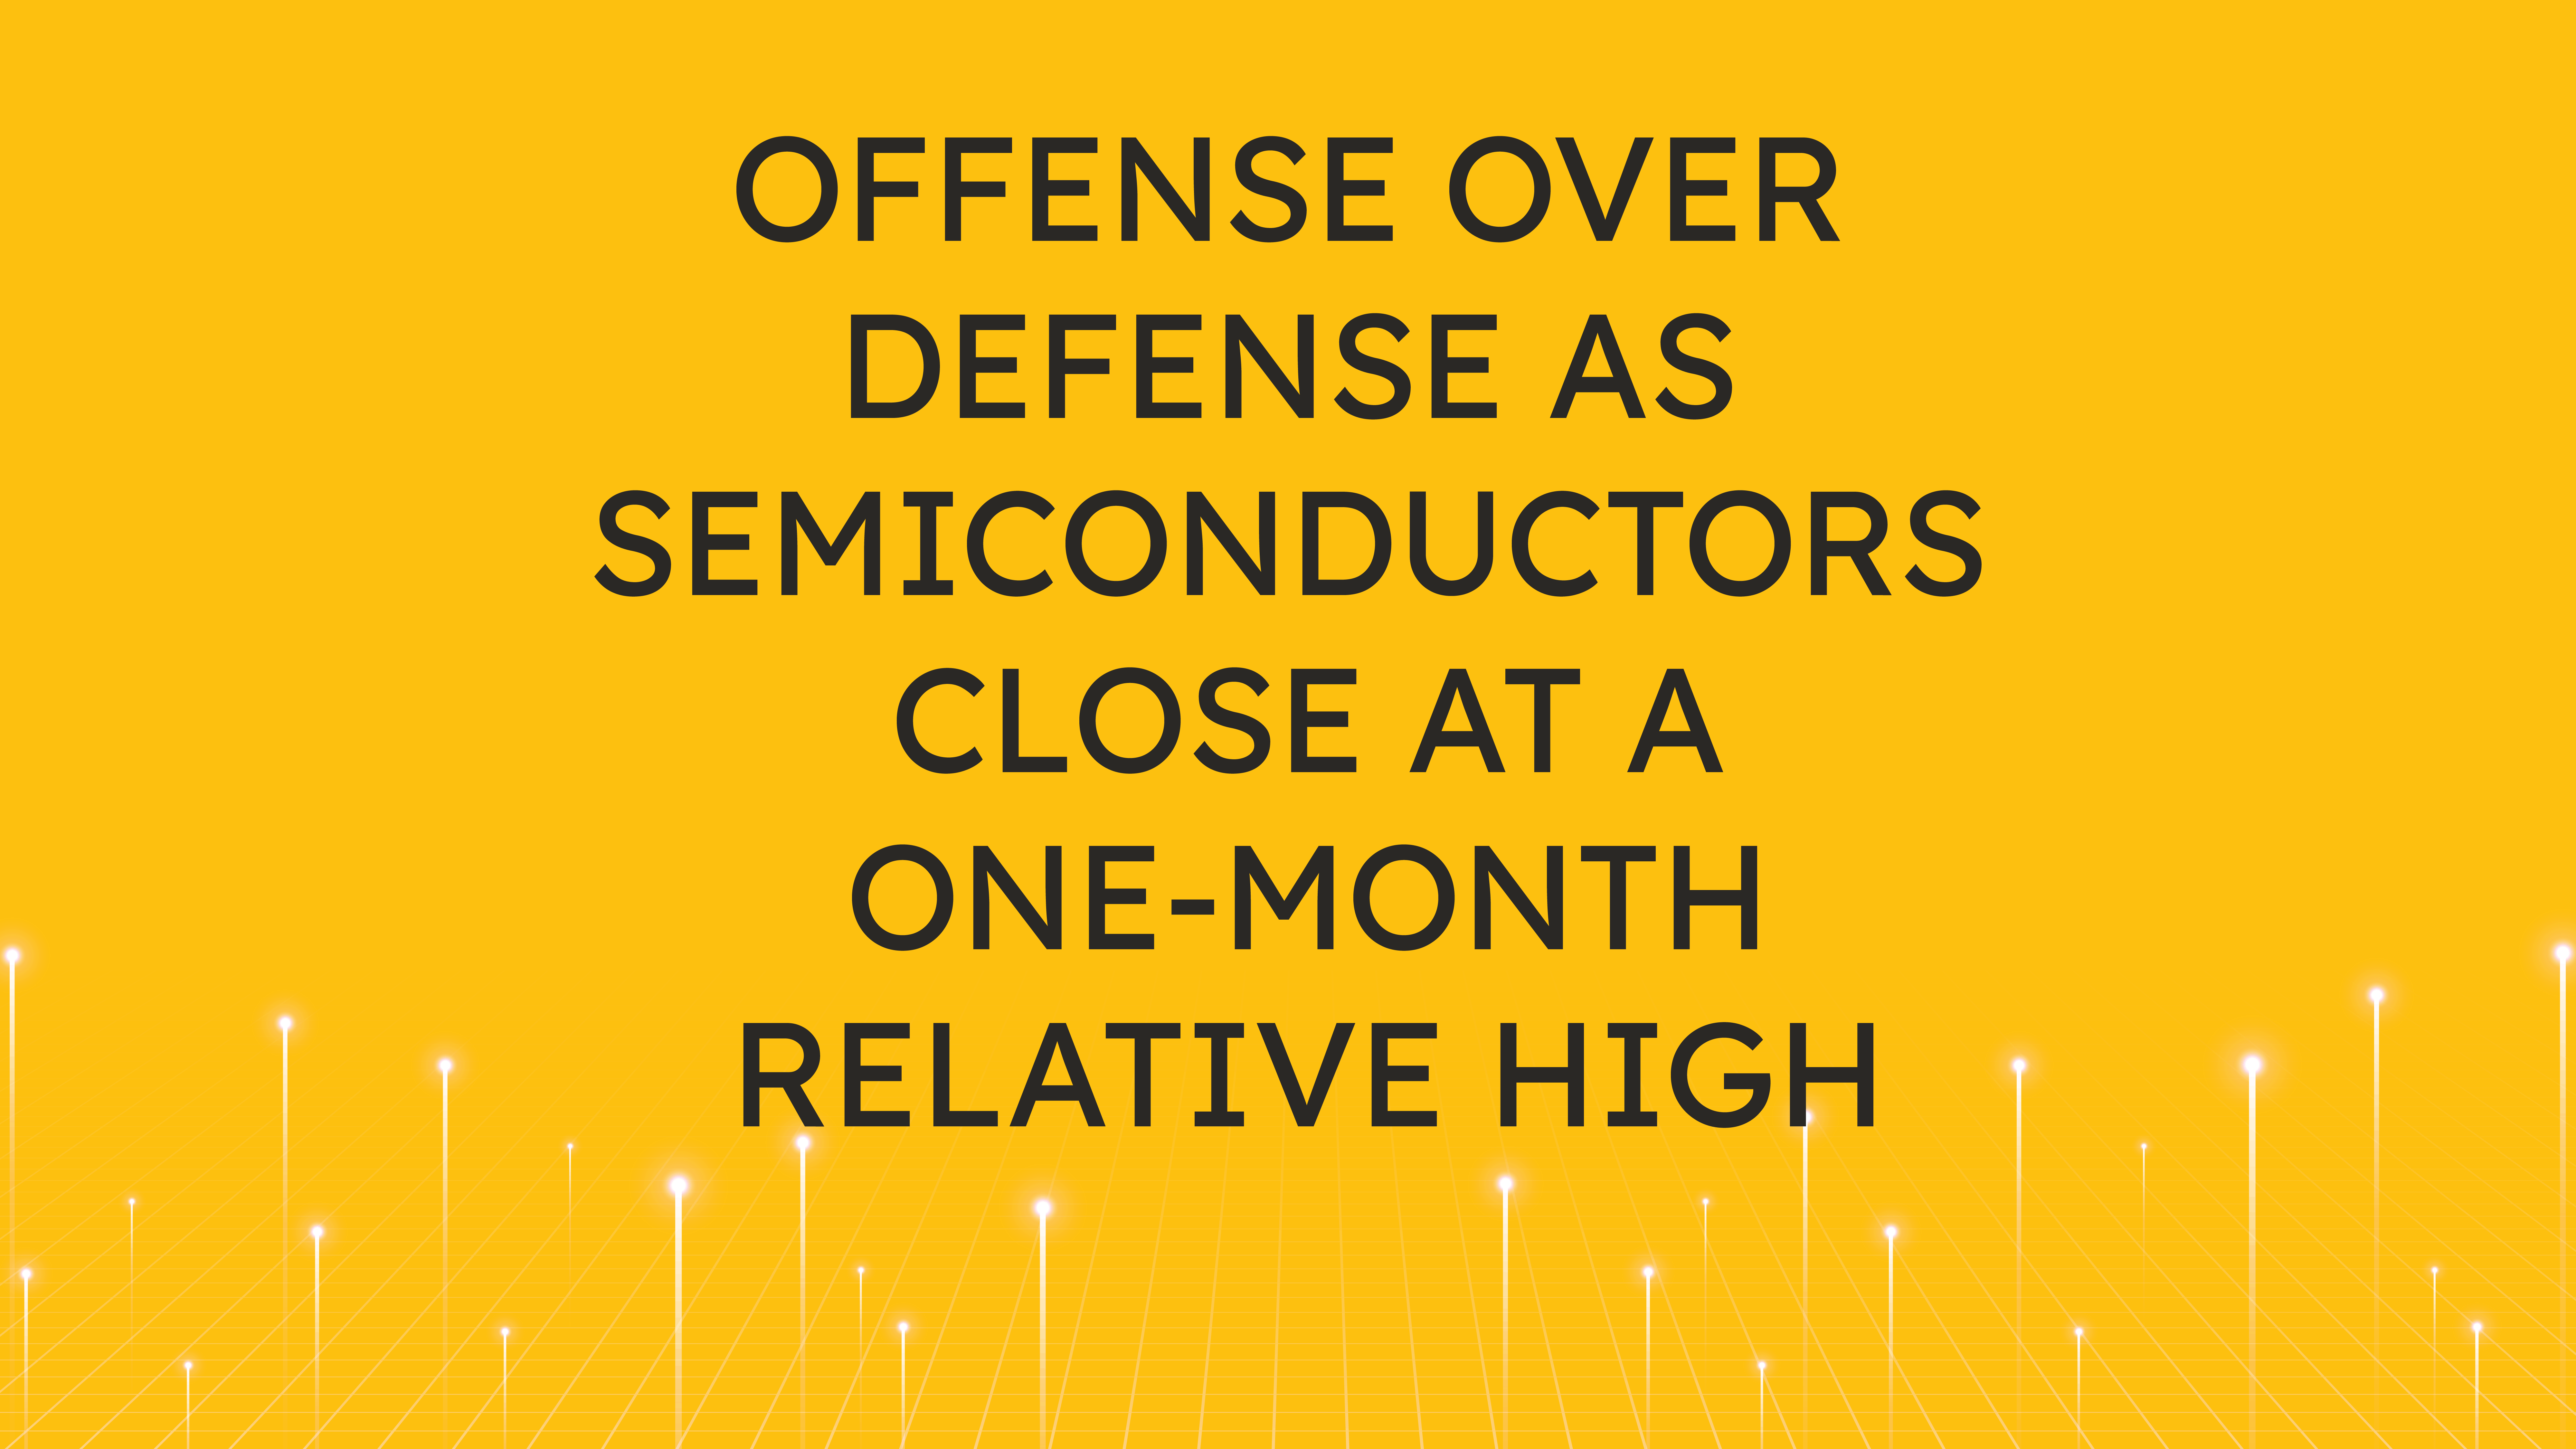 Offense Over Defense as Semiconductors Close at a One-Month Relative High